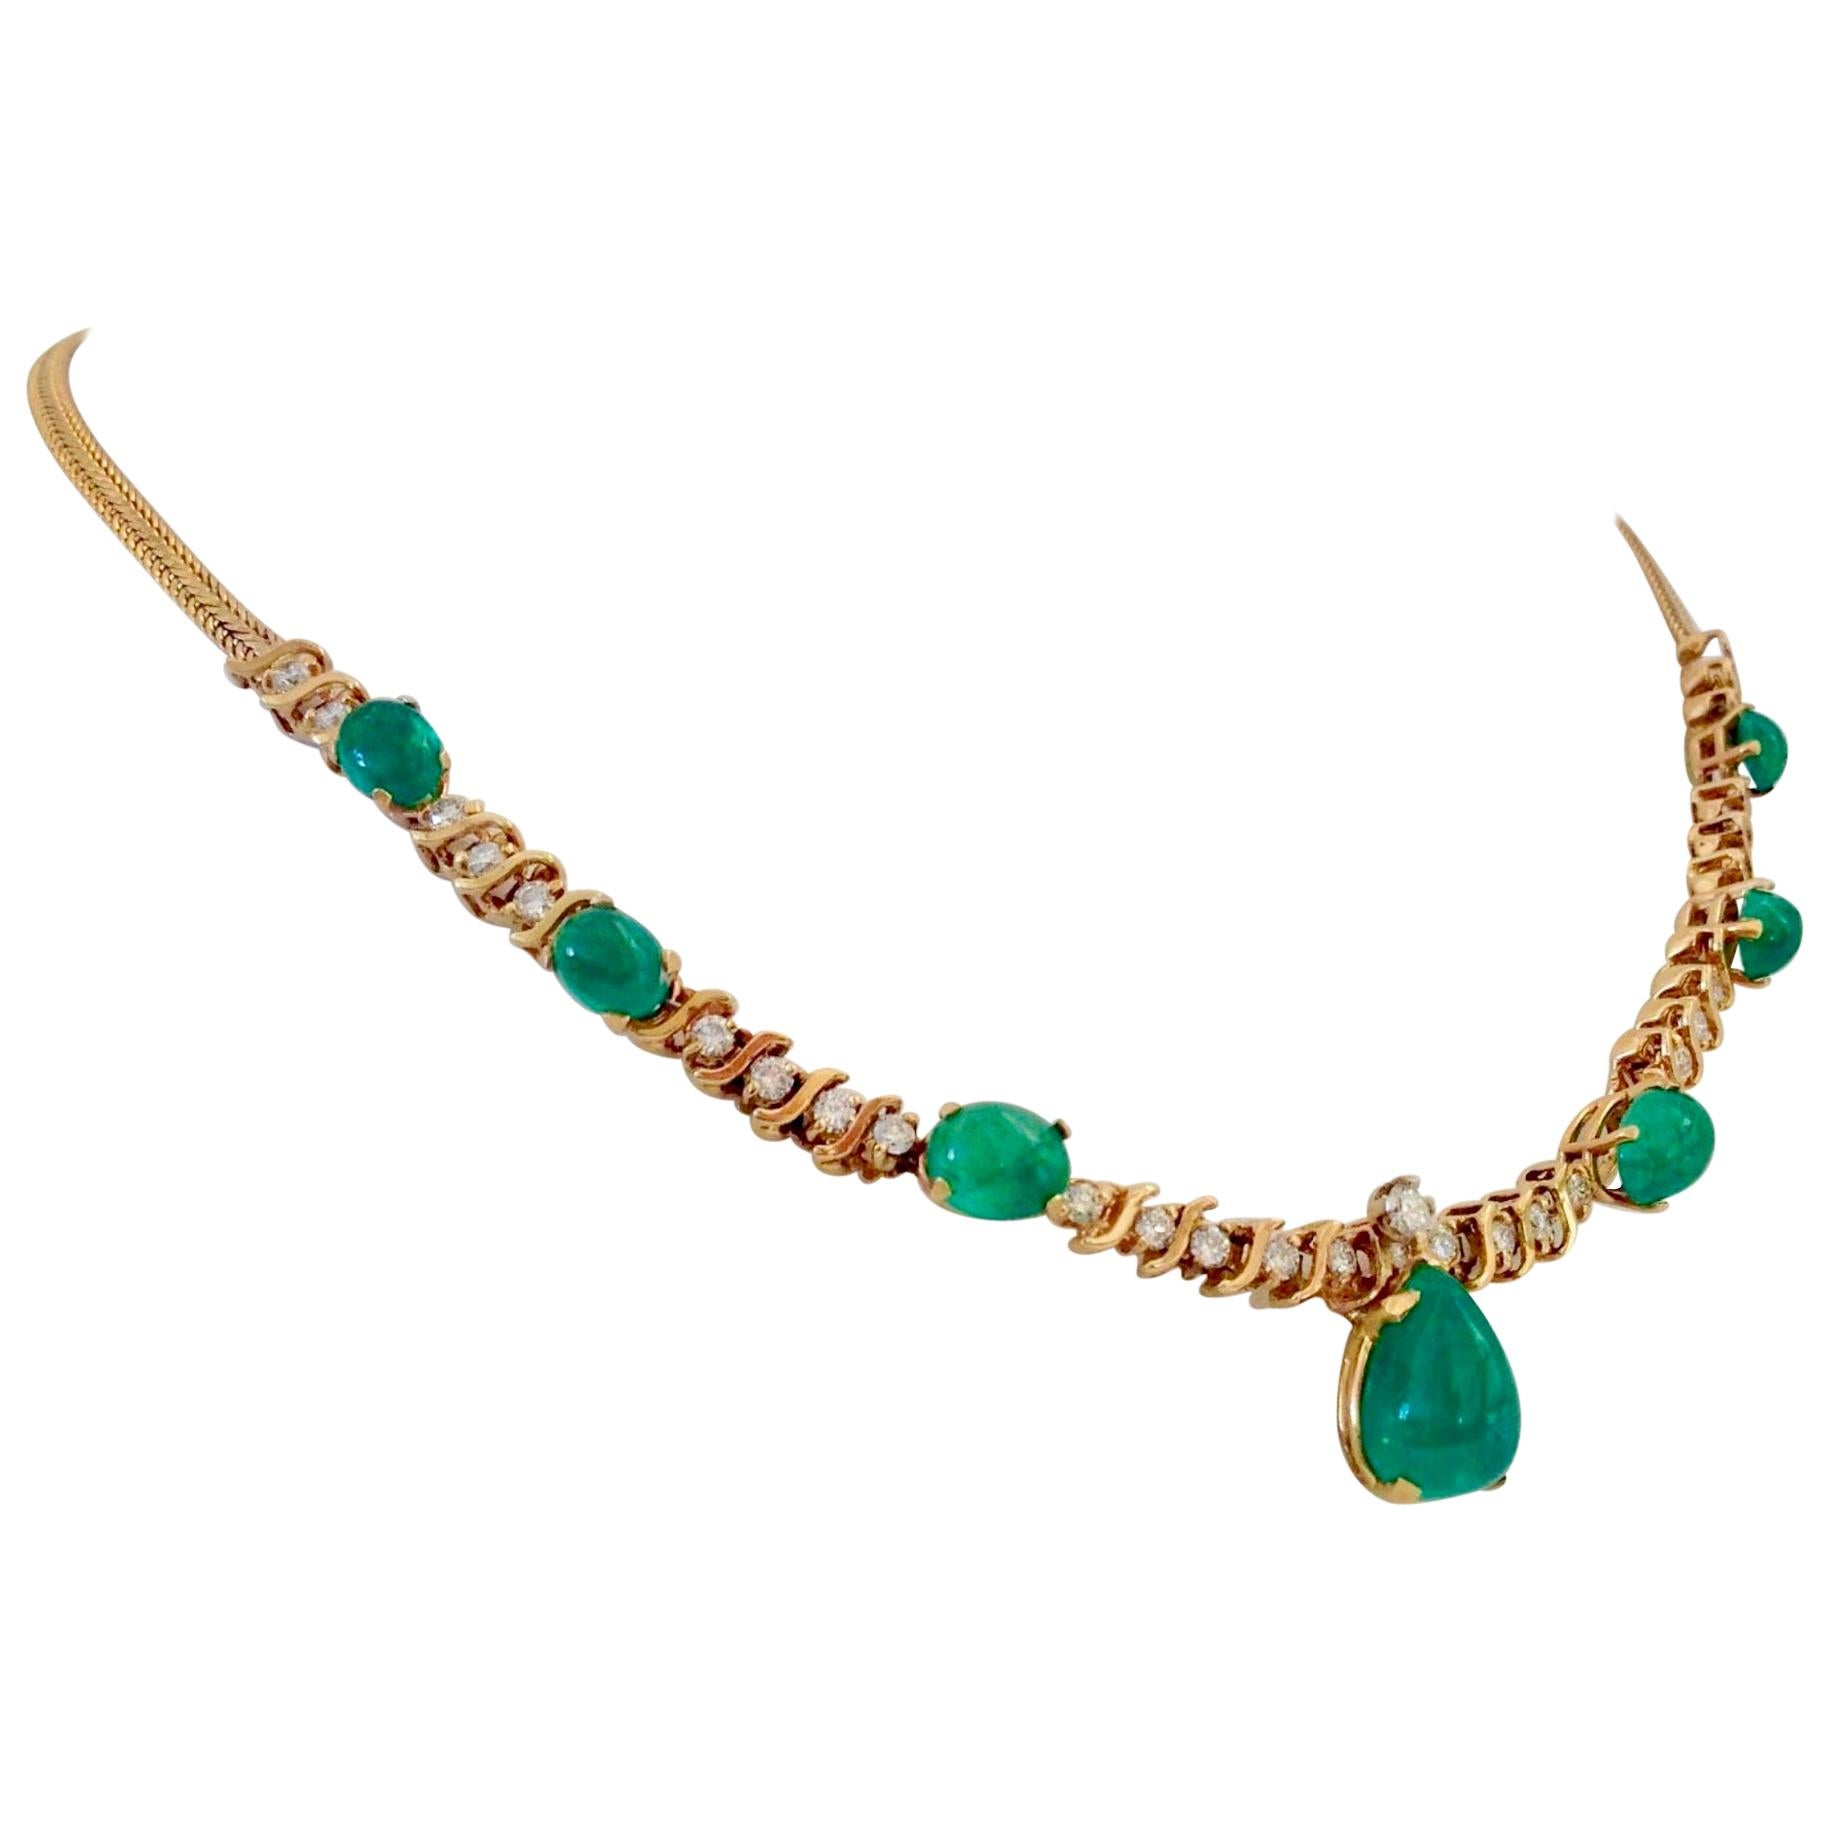 Suite Colombian Emerald Diamond Necklace and Earrings 16.7 Carat